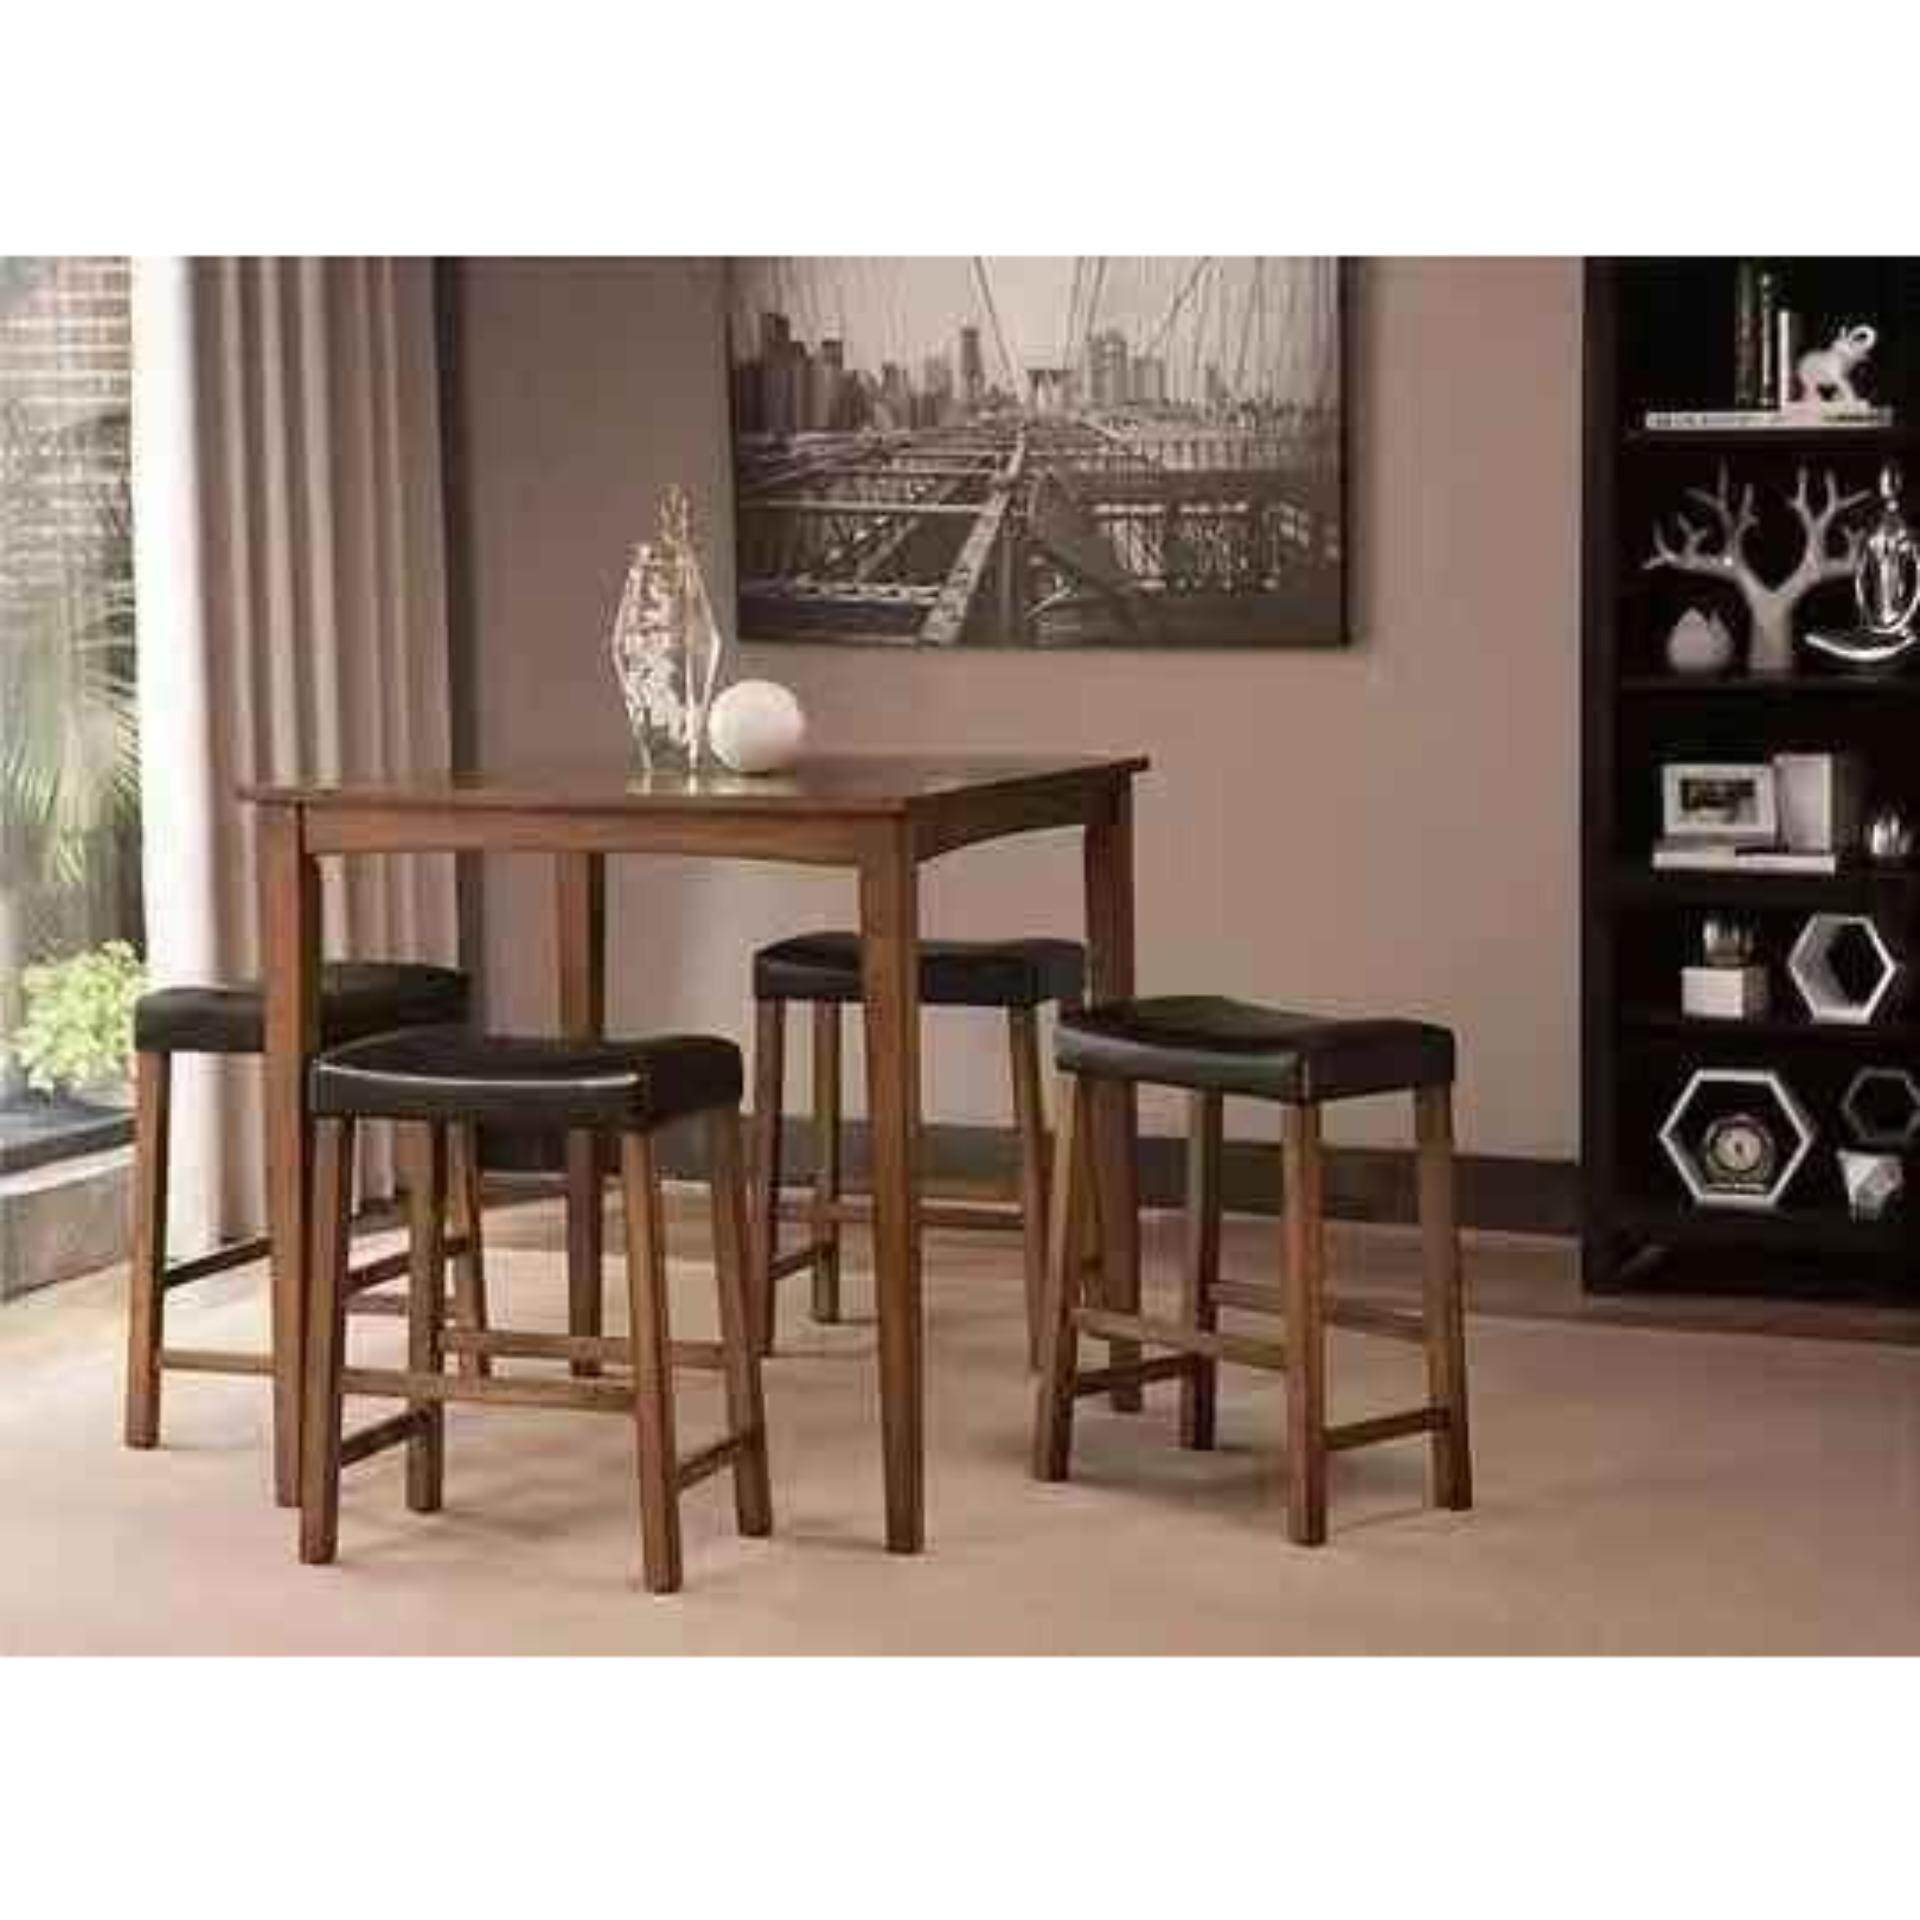 Export Grade 5-Piece Breakfast Table And Stools Set In Nut Brown / Kitchen Counter Height Dining Set Table Chair By Zoromees.